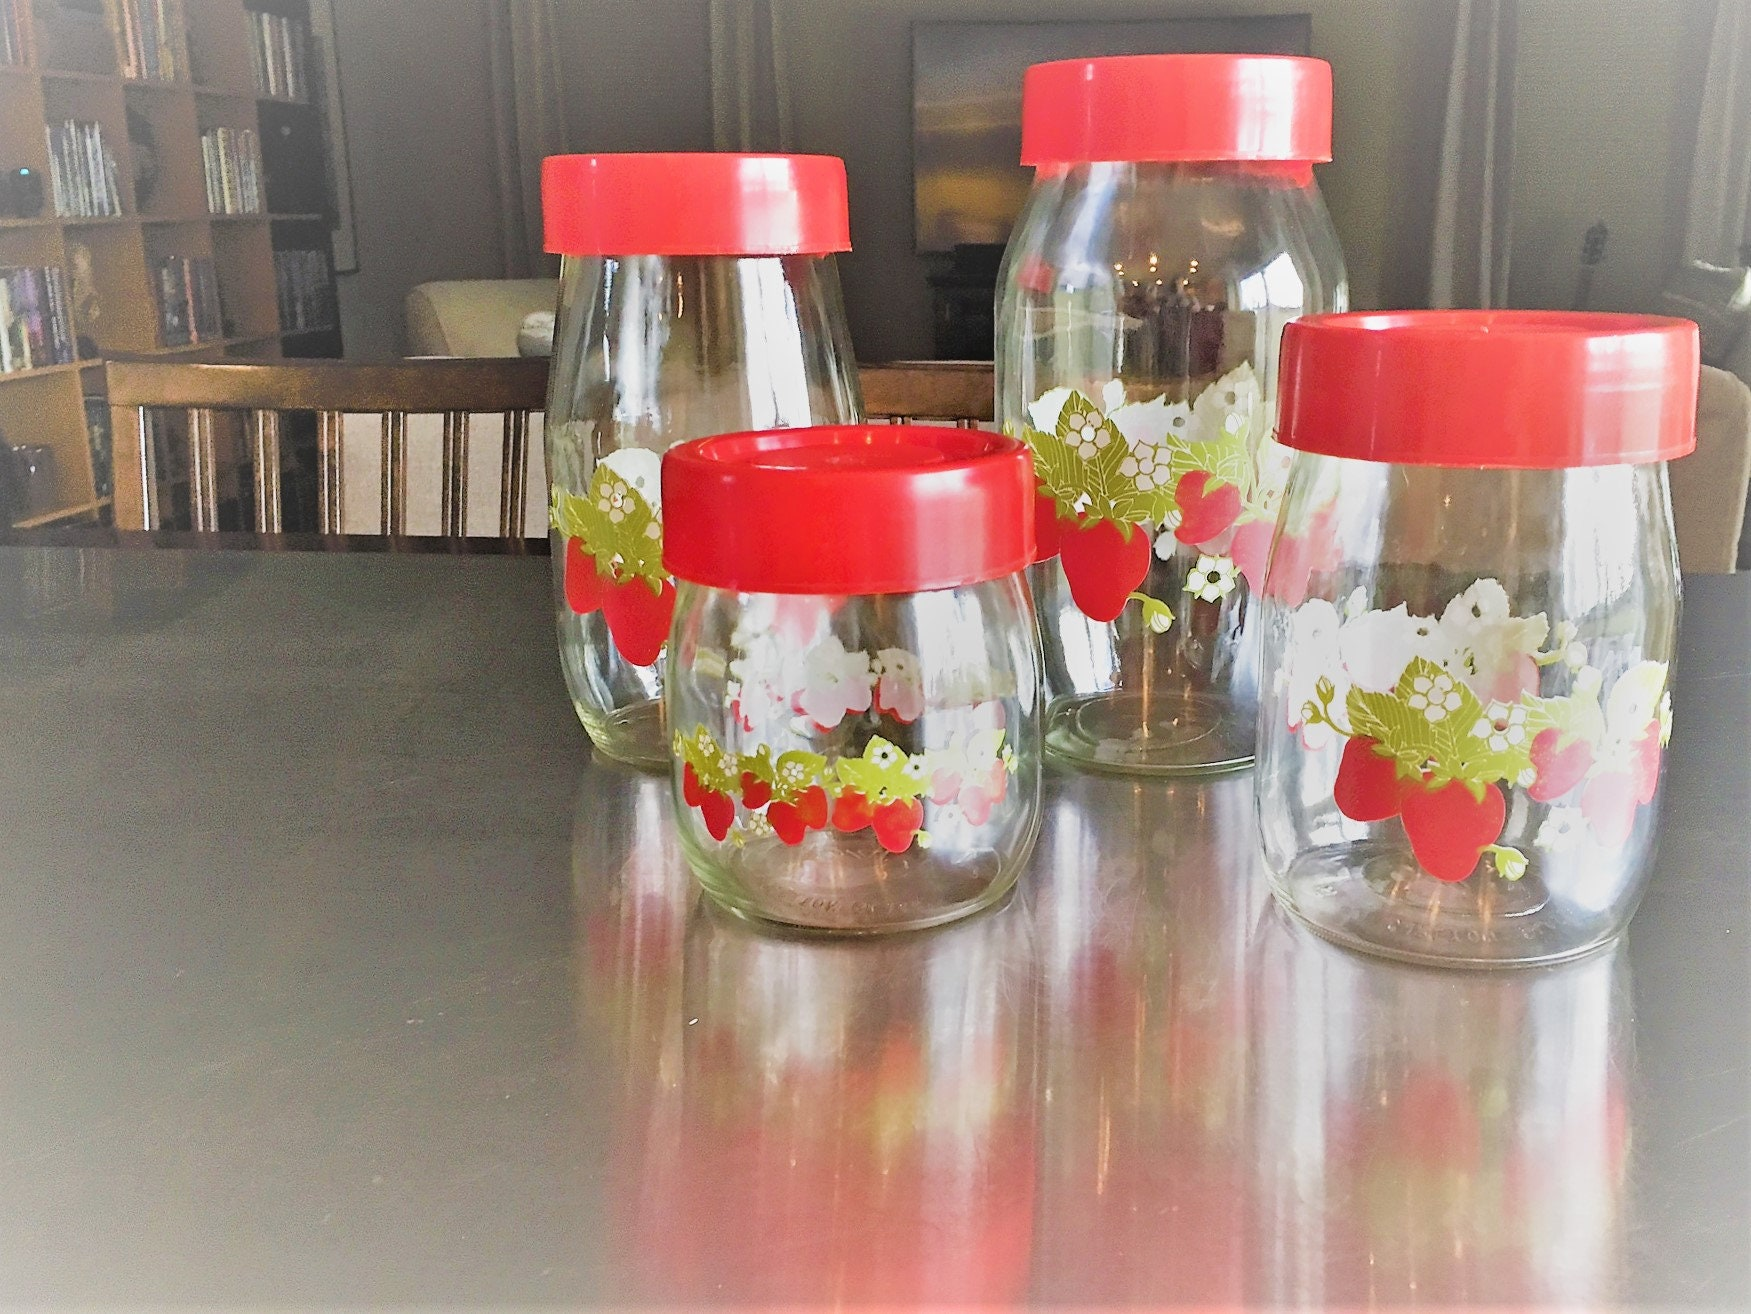 Set Of Four Vintage Storage Jars   Carlton Glass   Strawberry Motif   Red  Lids   Kitchen Canisters   Kitchen Storage